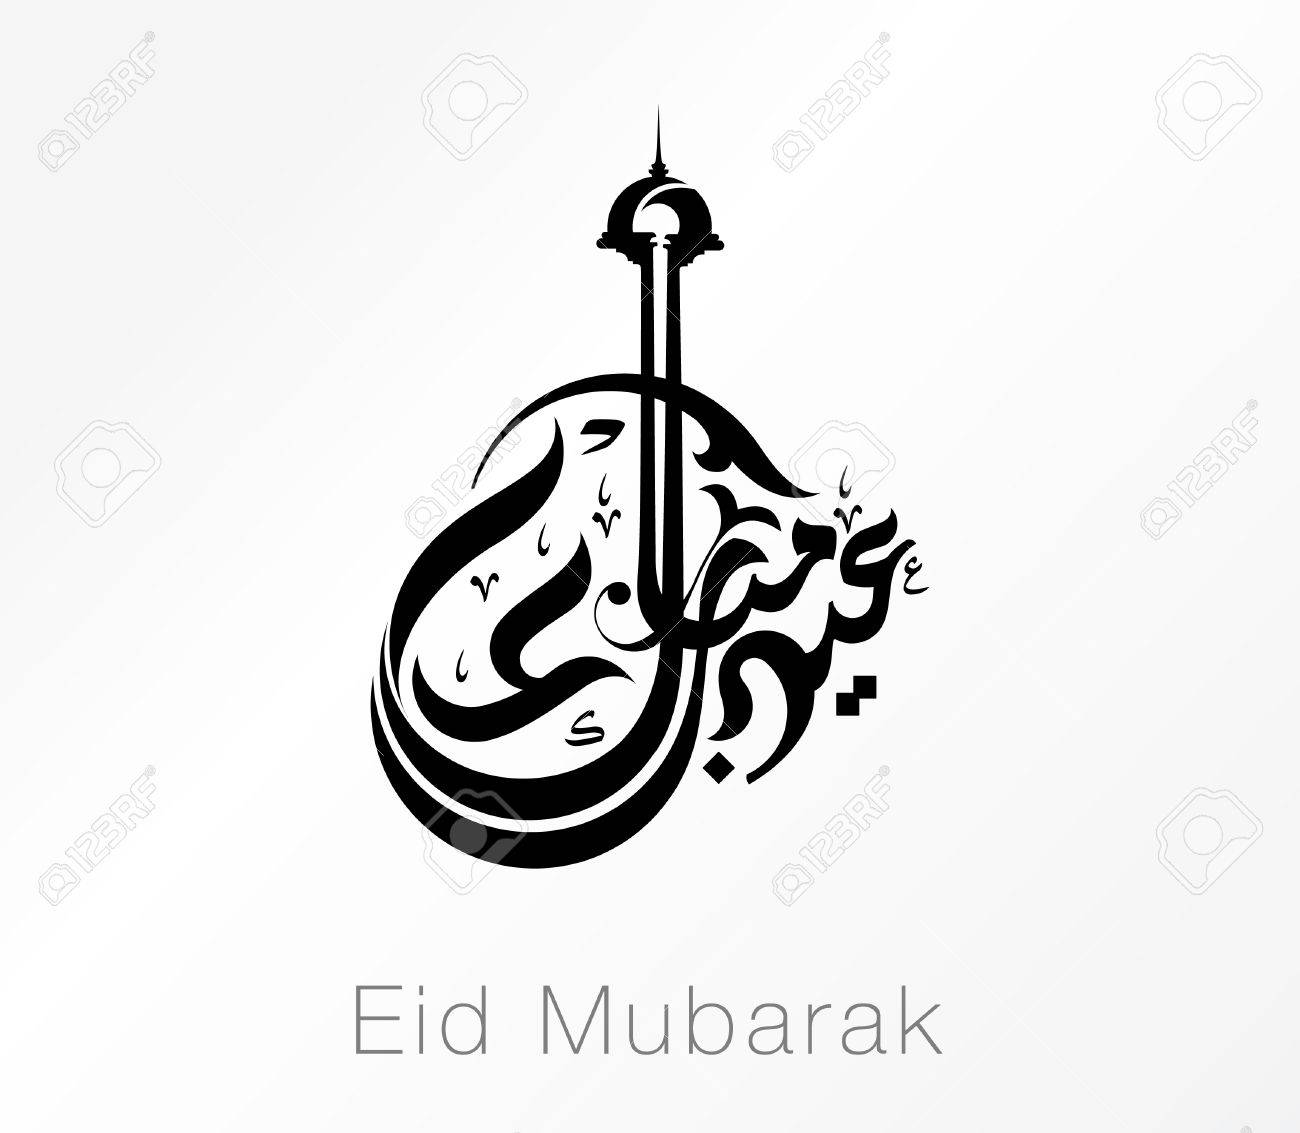 Eid Mubarak Blessed Festival In Arabic Calligraphy With